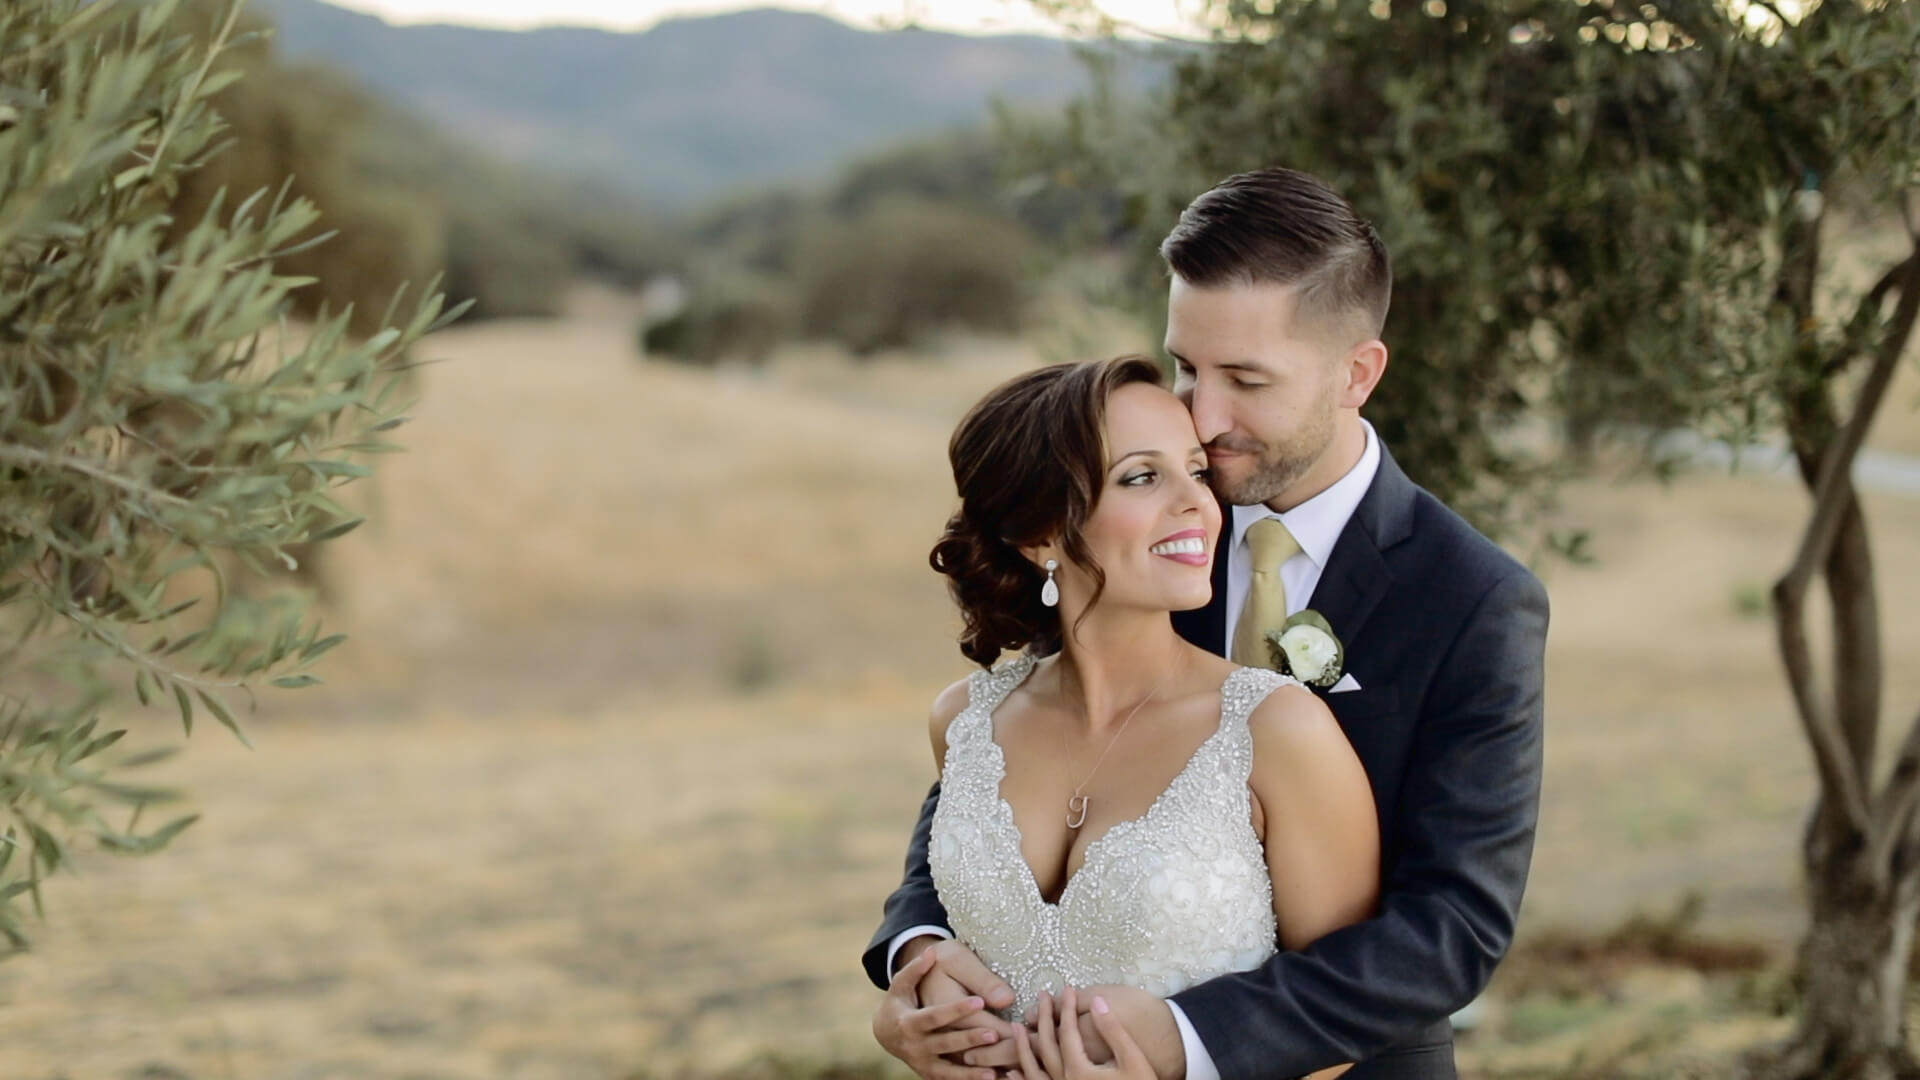 Sacramento California Wedding by Award Winning Wedding Studio Aperina Studios